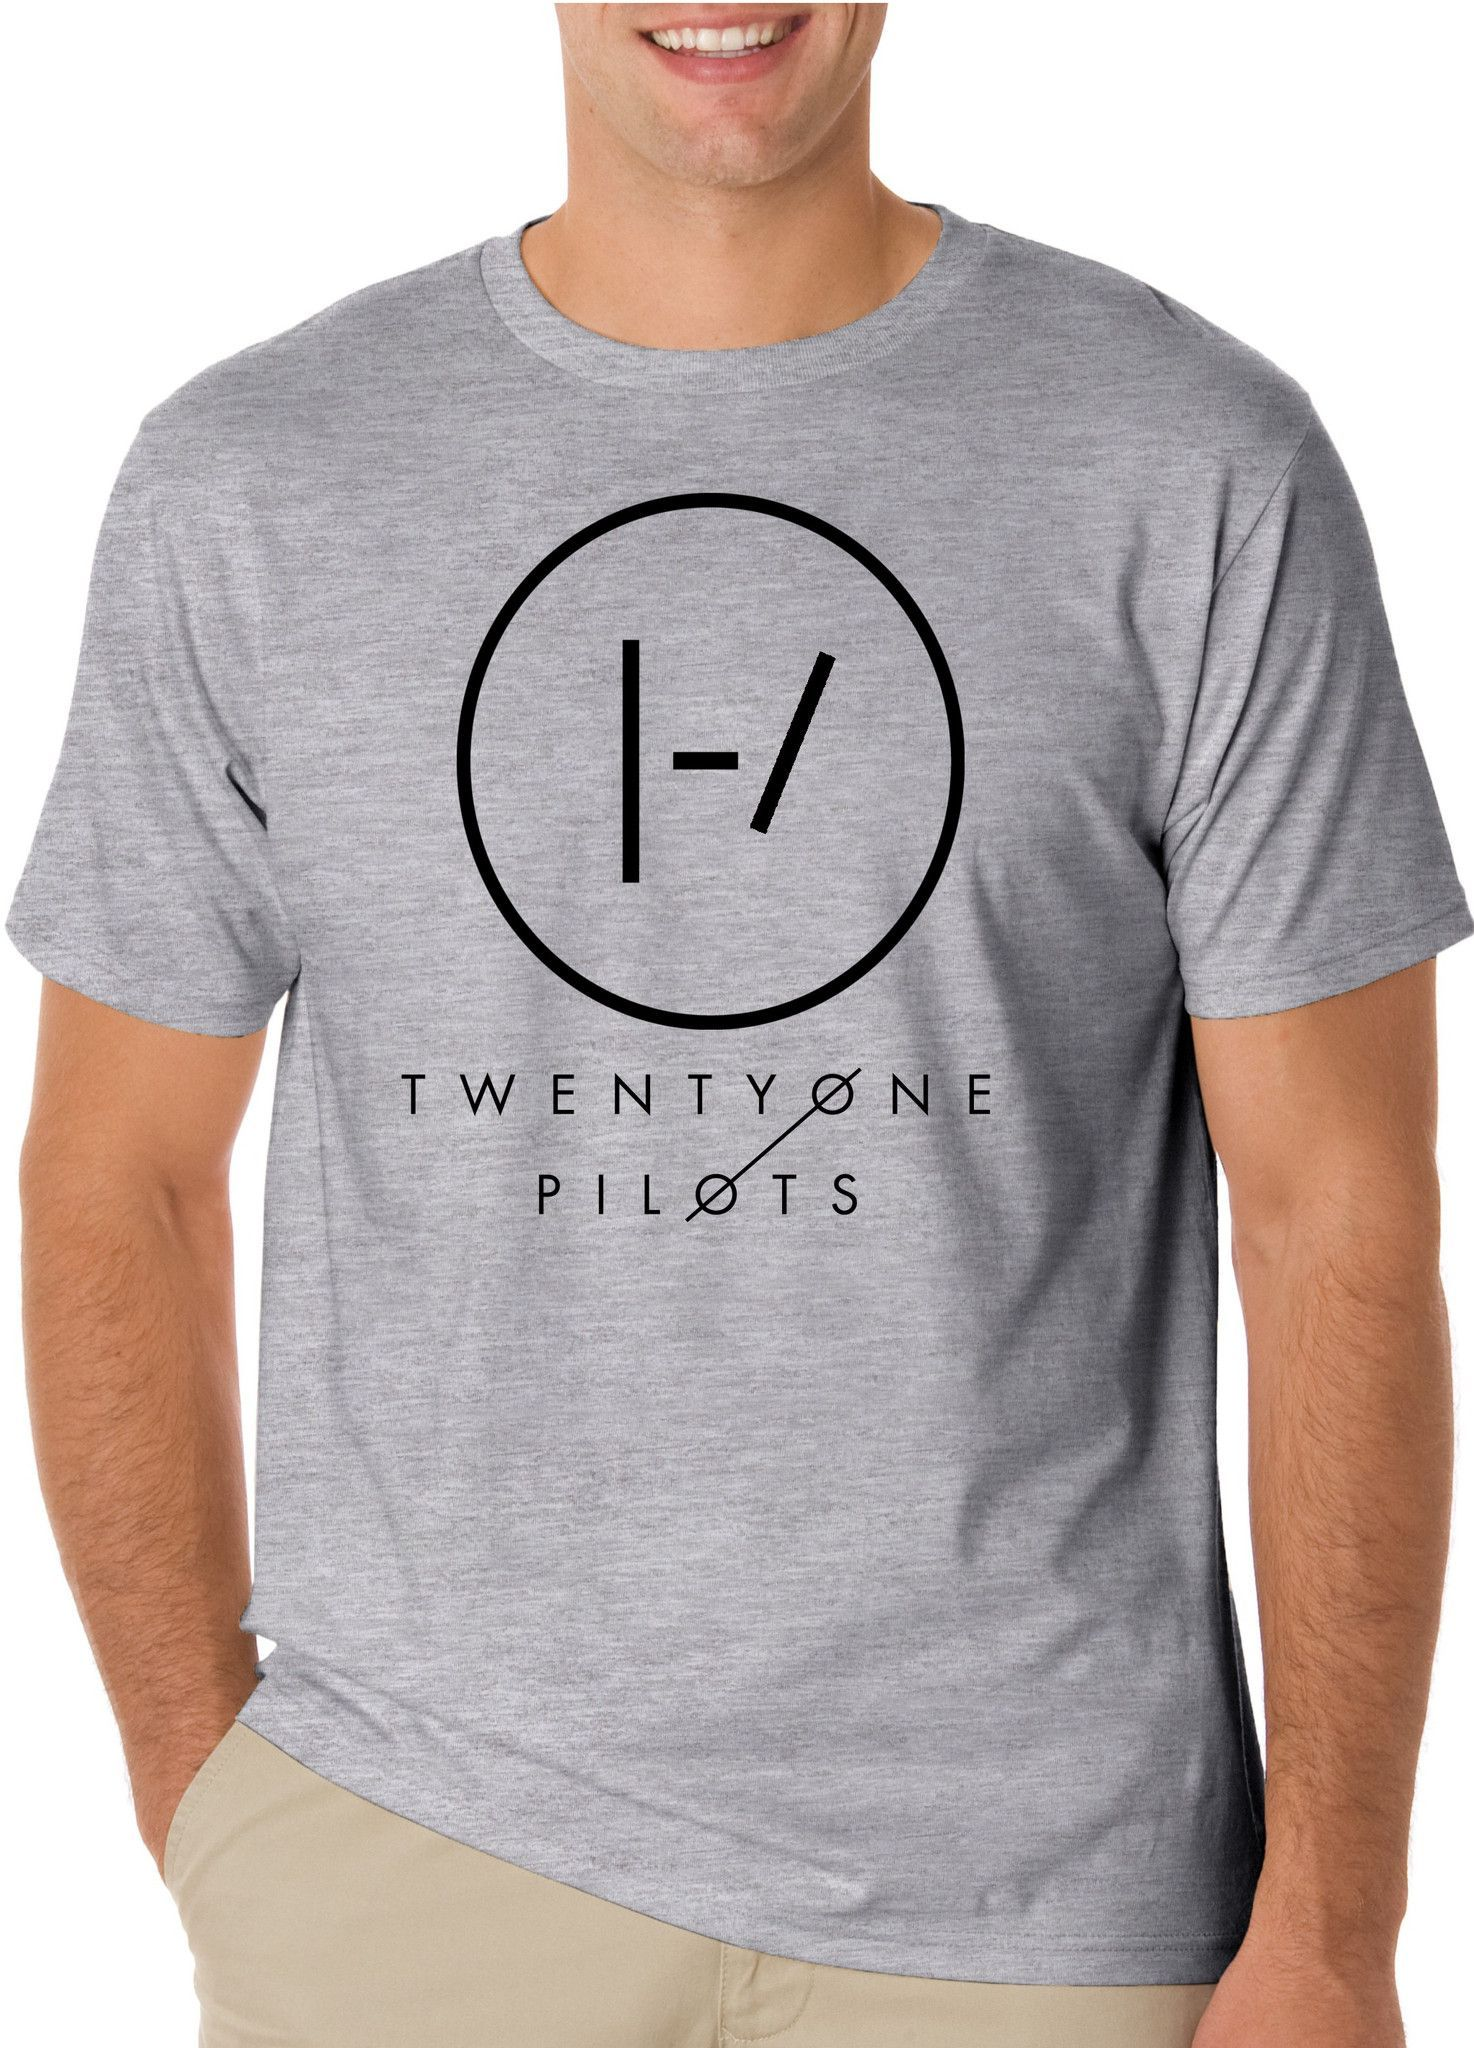 twenty one pilots t shirt band merch clothes and stuffing